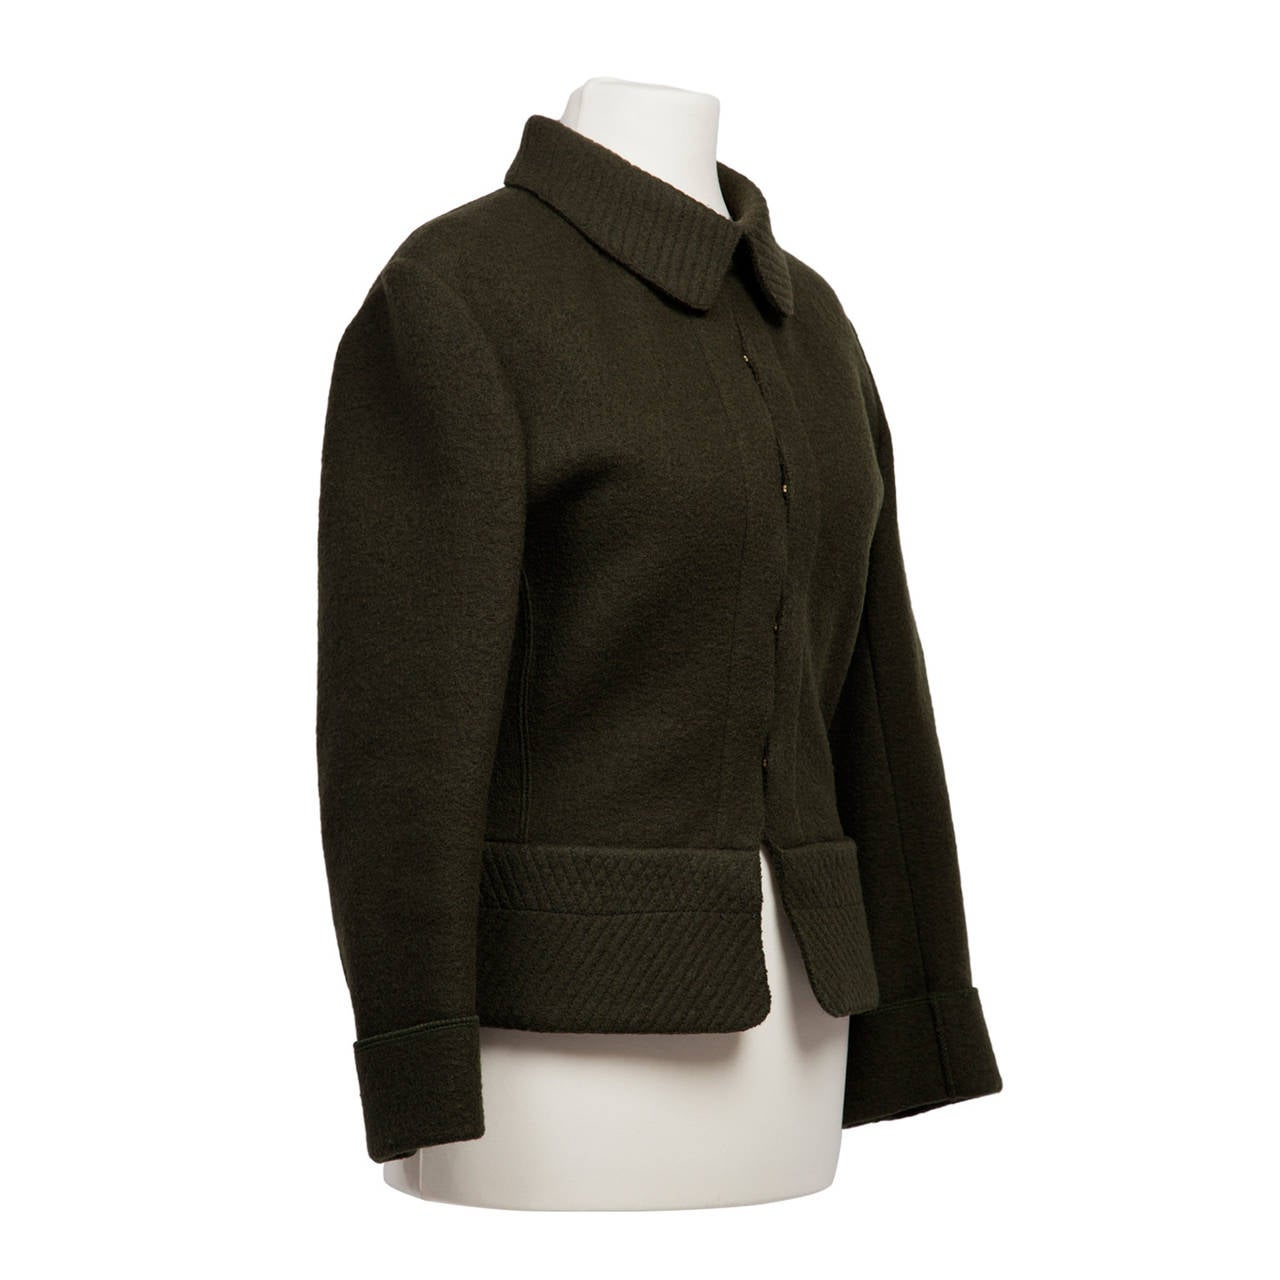 Black Alaia Khaki Olive Green Wool Jacket 1980's For Sale